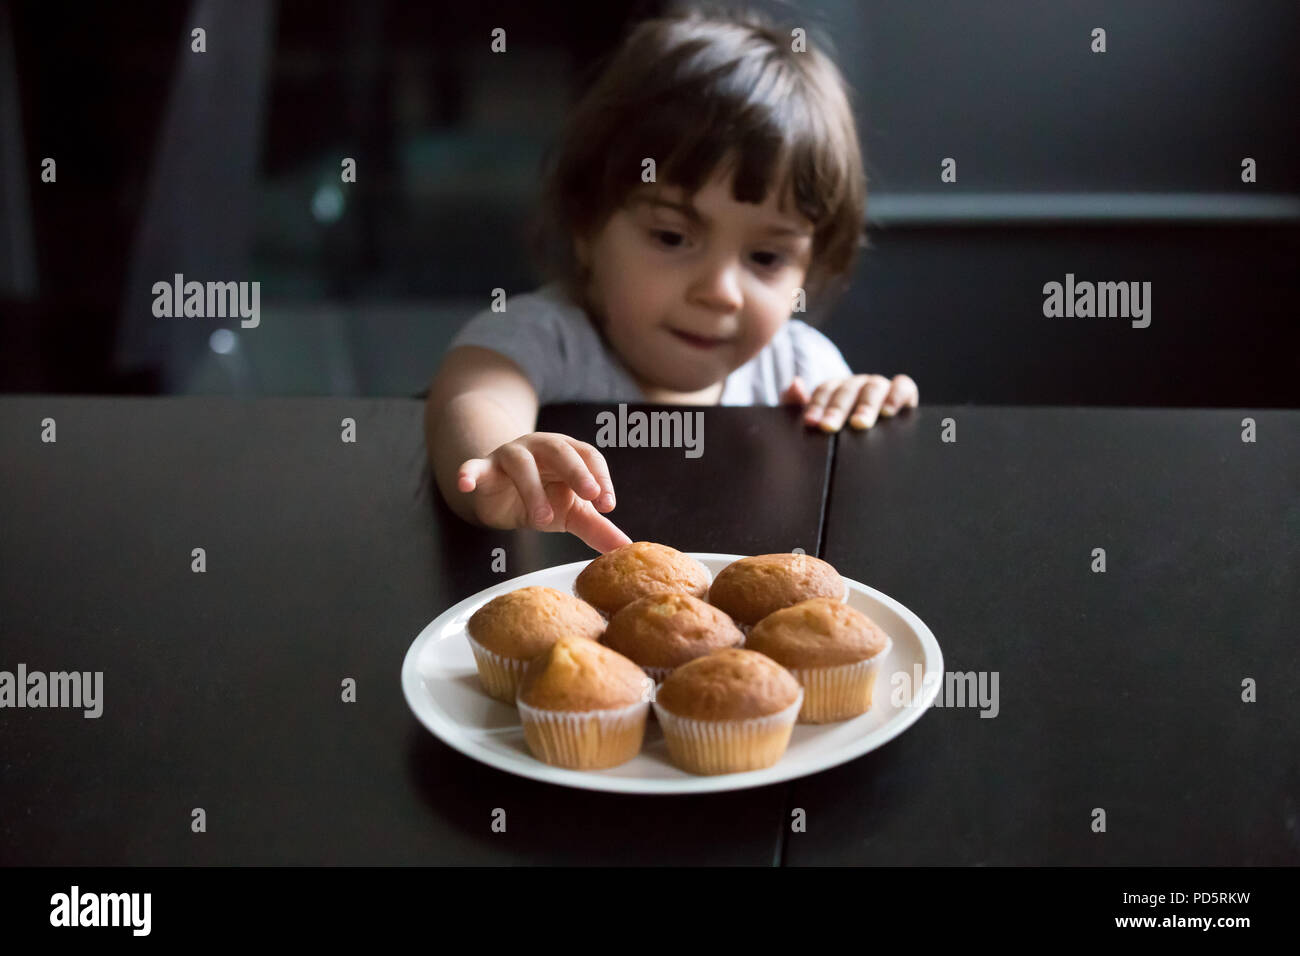 Cute curious little girl reaching muffins on the table - Stock Image